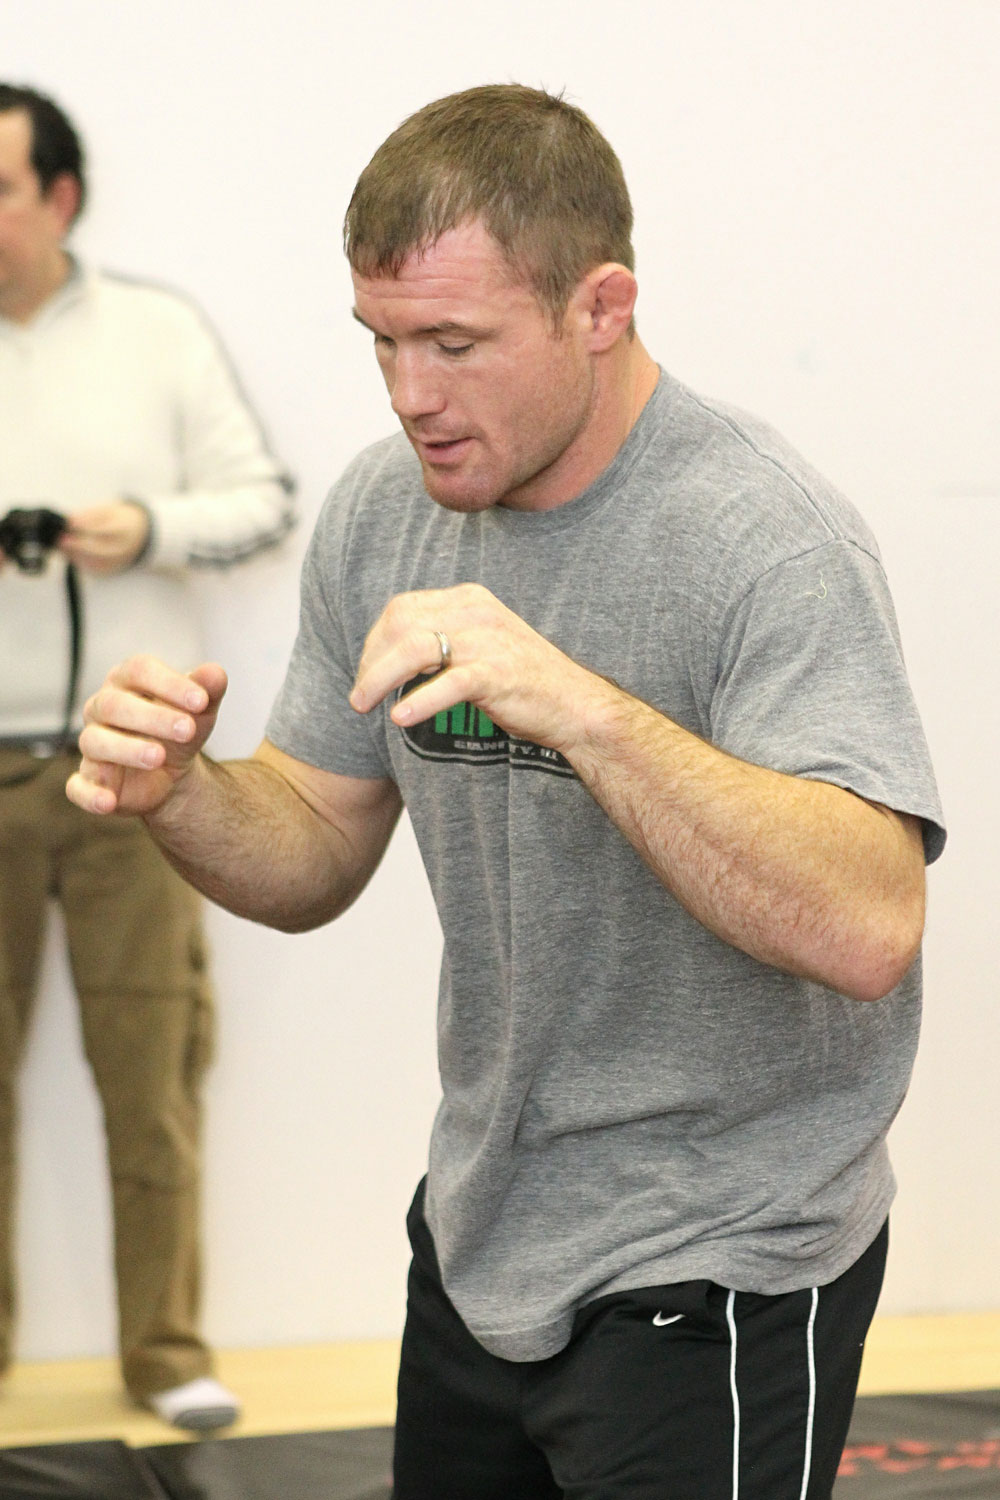 Matt Hughes works out for the media at the UFC 123 open workouts at the Detroit Athletic Club in Detroit, Michigan on November 18, 2010  (Photo by Josh Hedges/Zuffa LLC/Zuffa LLC via Getty Images)